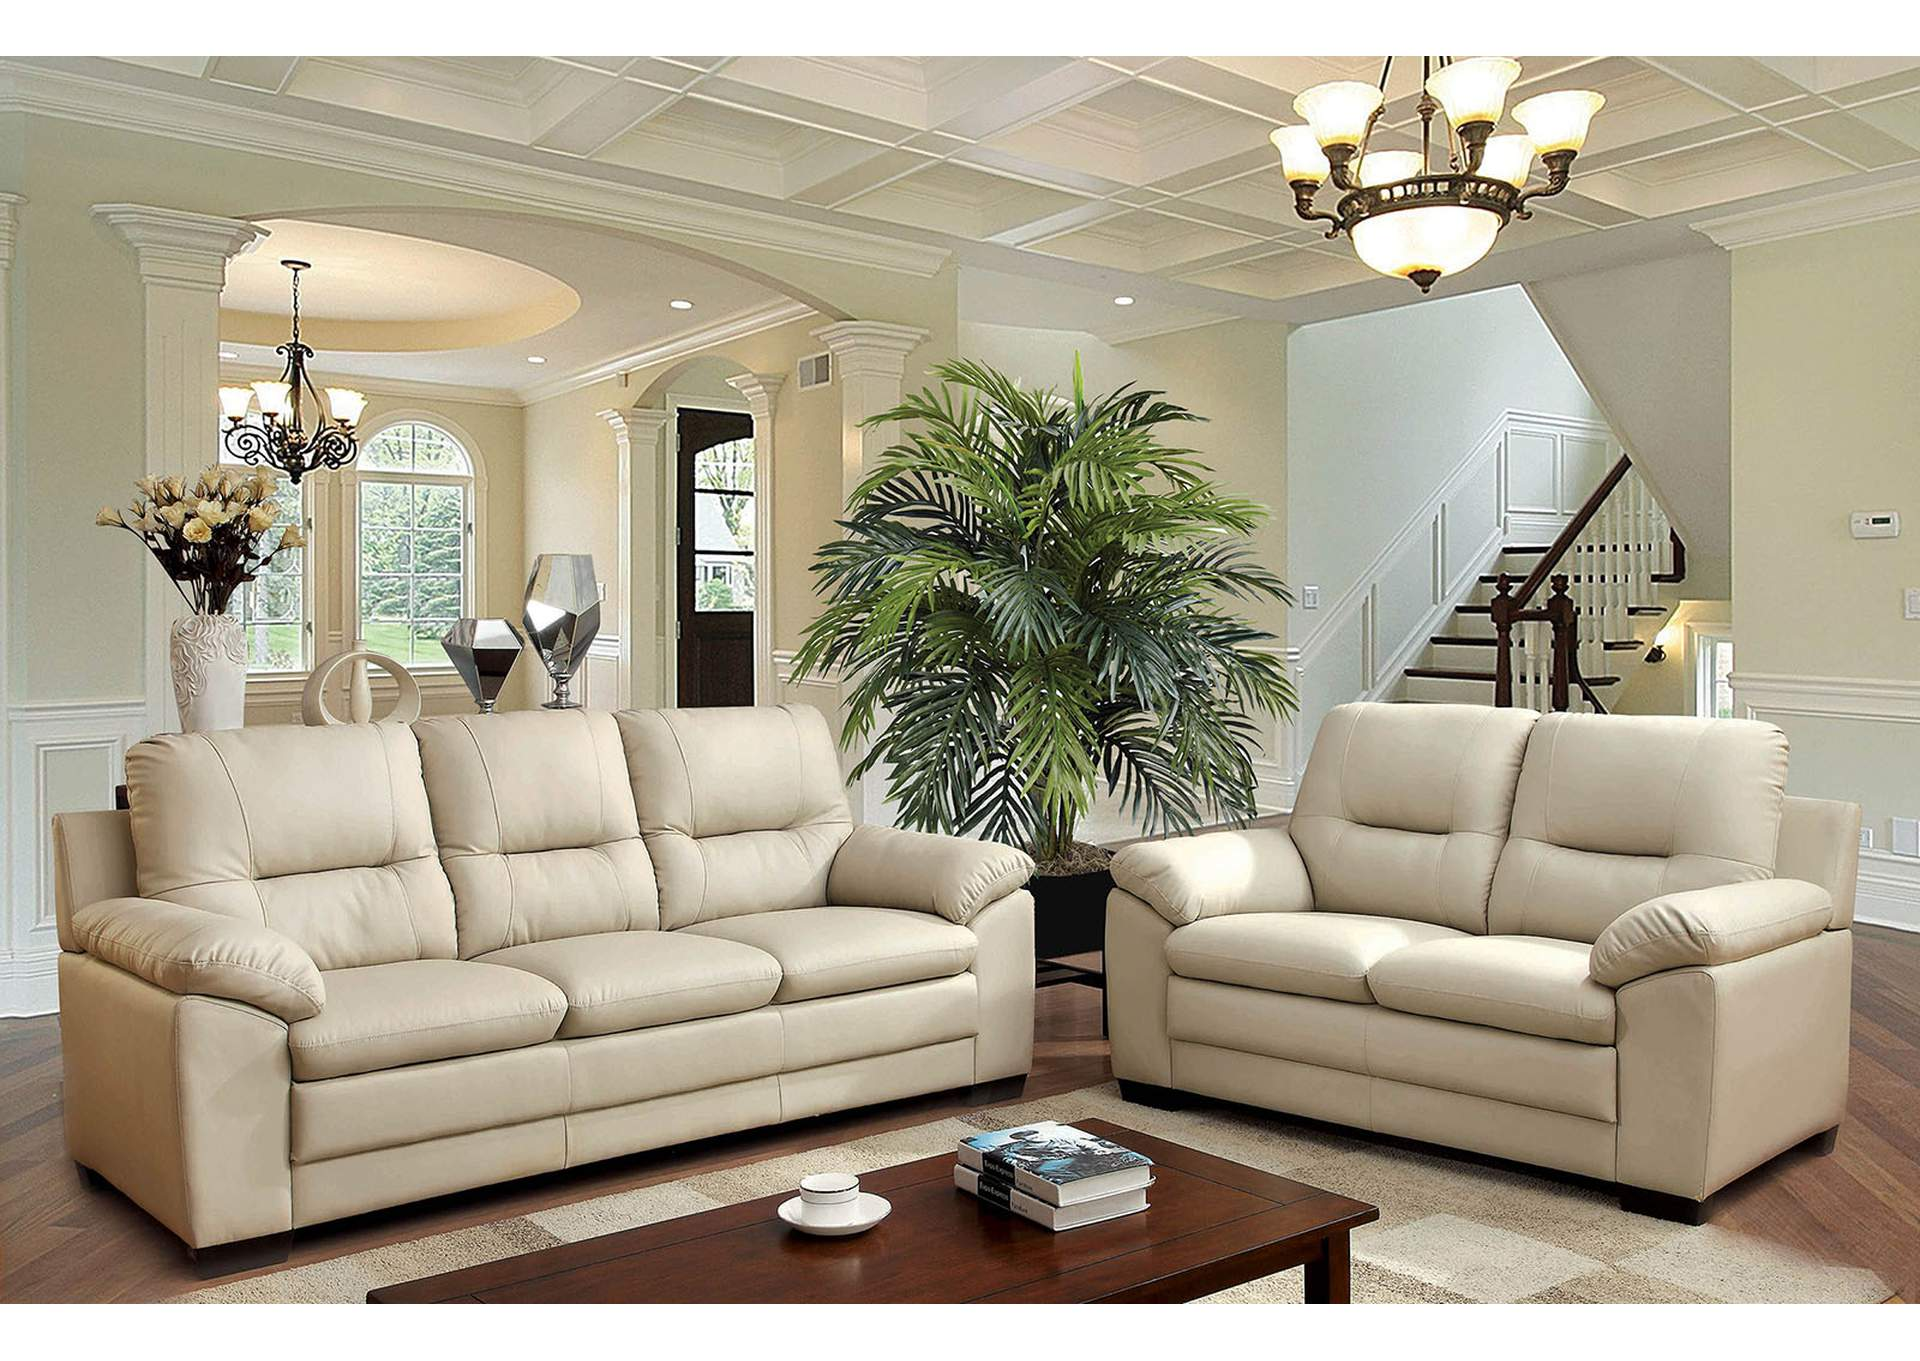 squan furniture parma ivory polyurethane sofa. Black Bedroom Furniture Sets. Home Design Ideas